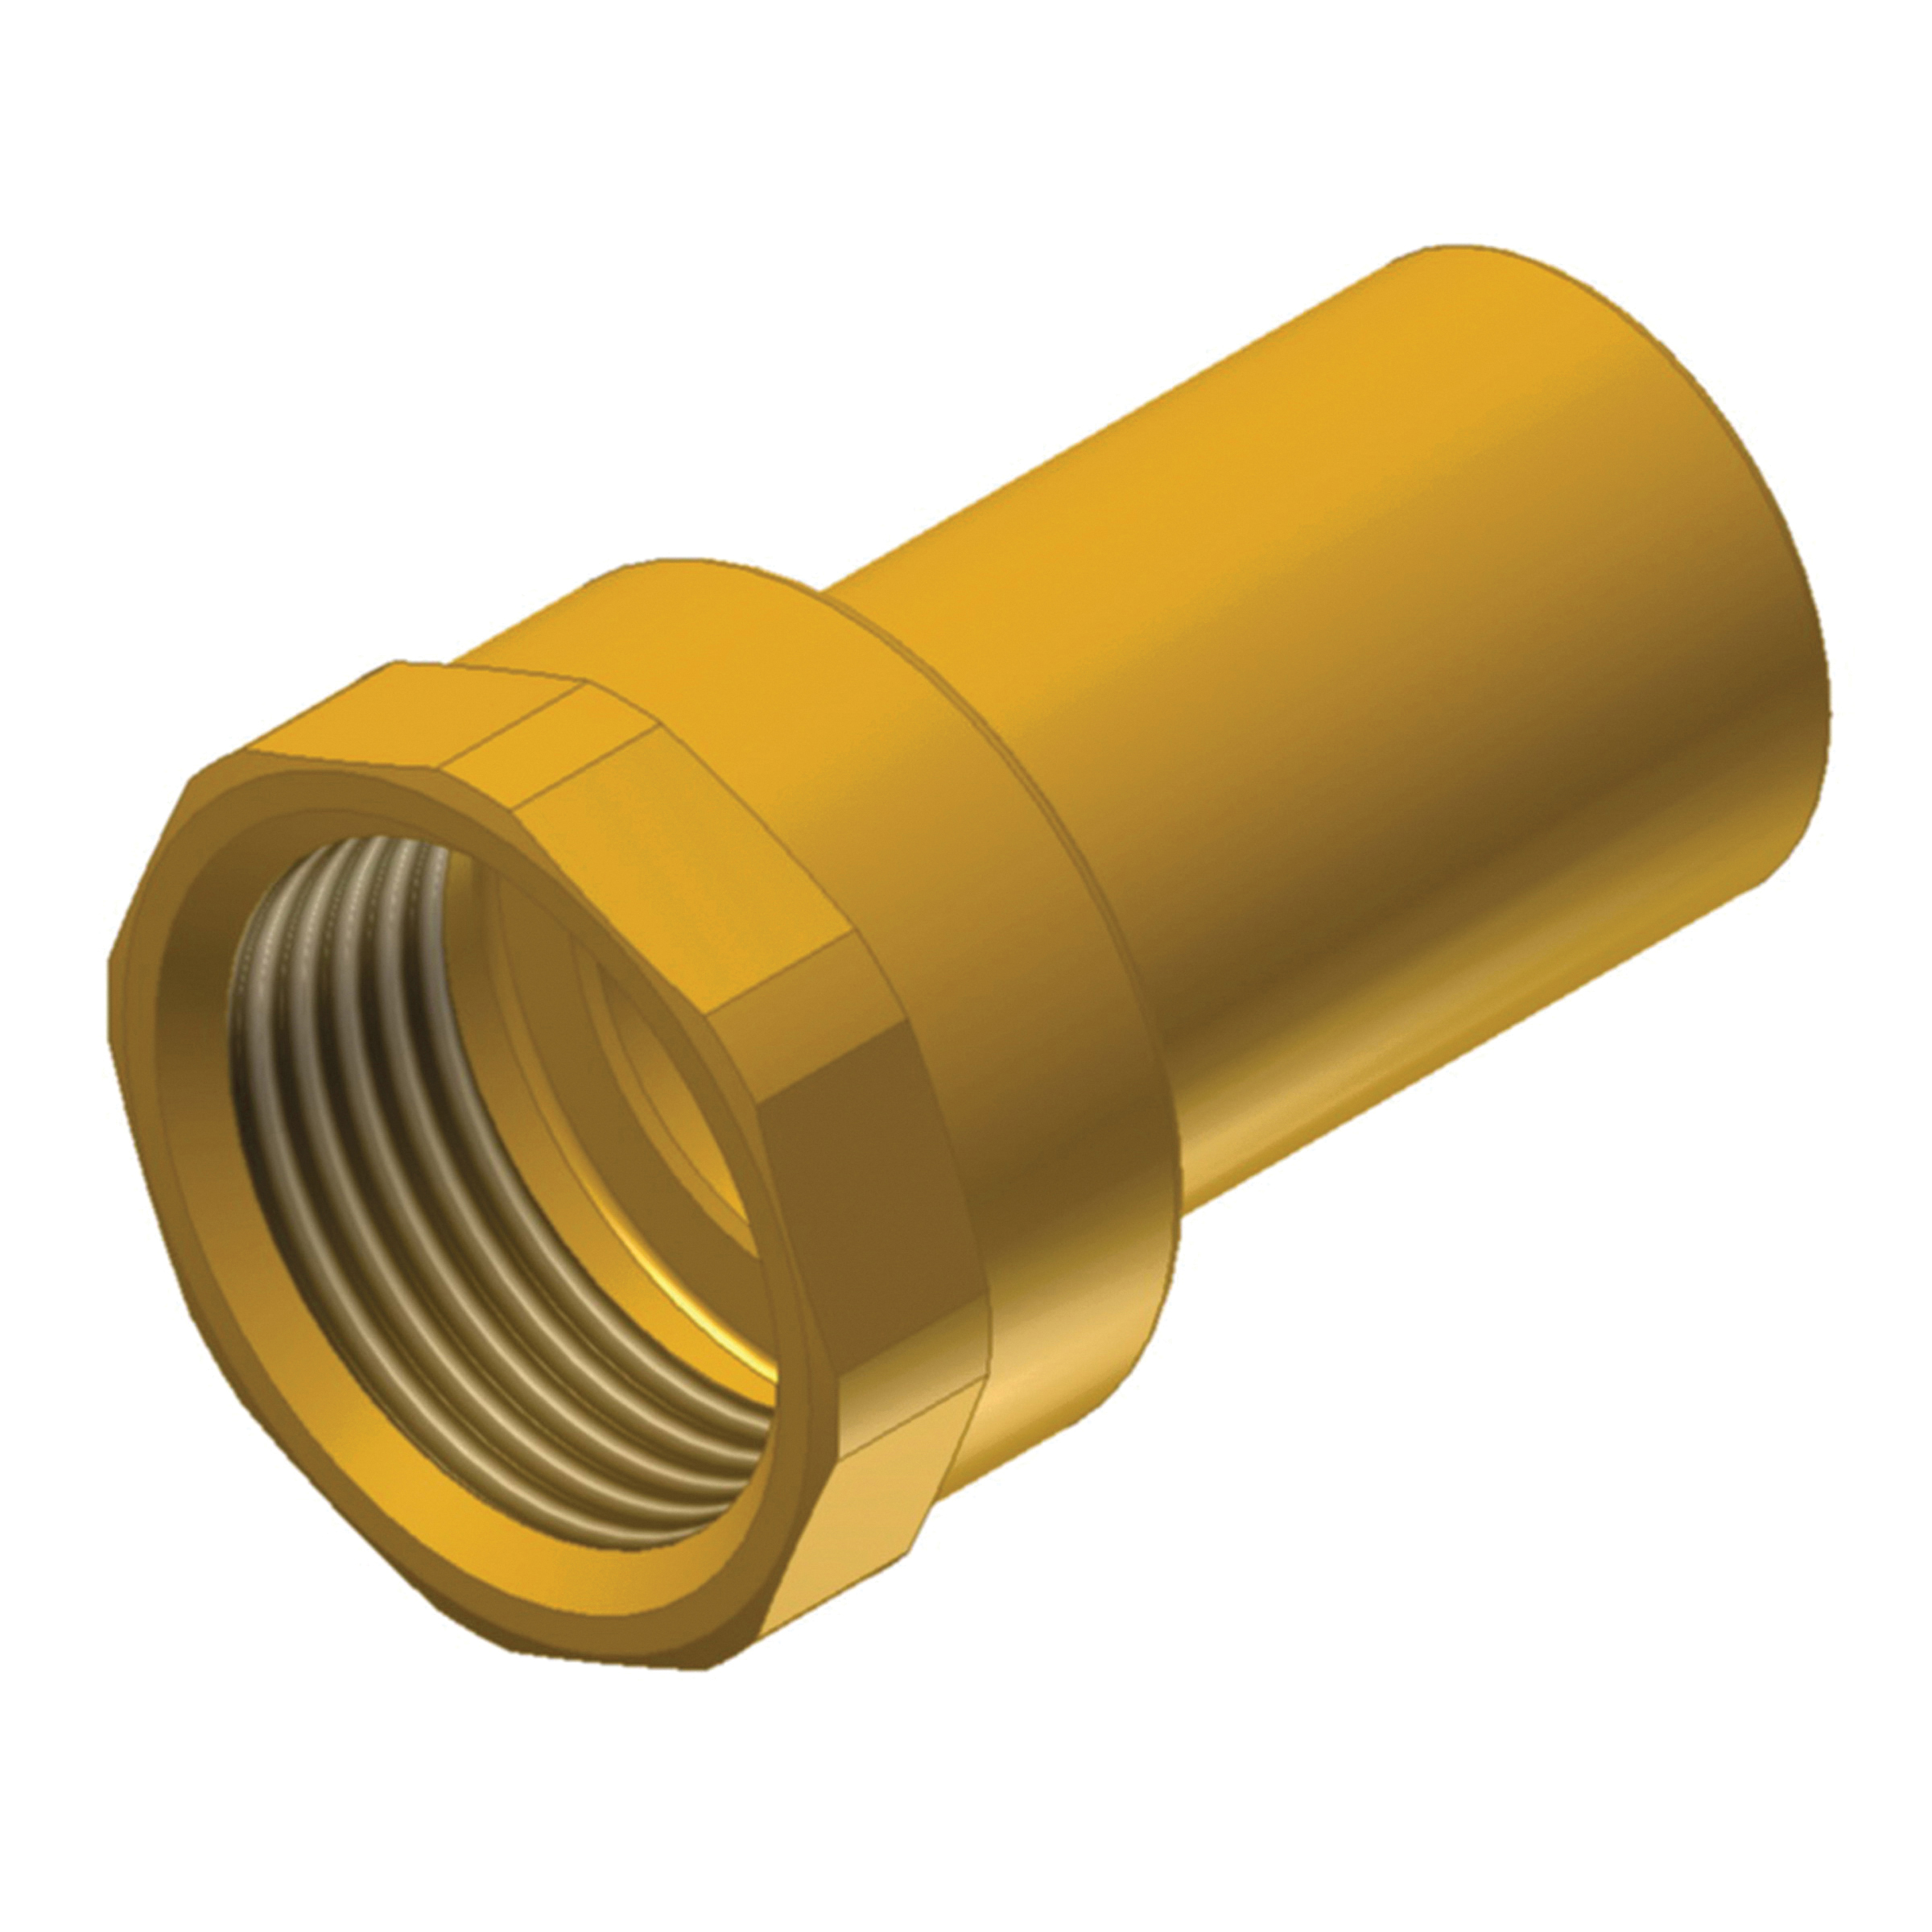 EPC ApolloPRESS® 10075776 803-2 Press Female Street Adapter, 1-1/2 in, Fitting x FNPT, Brass, Domestic